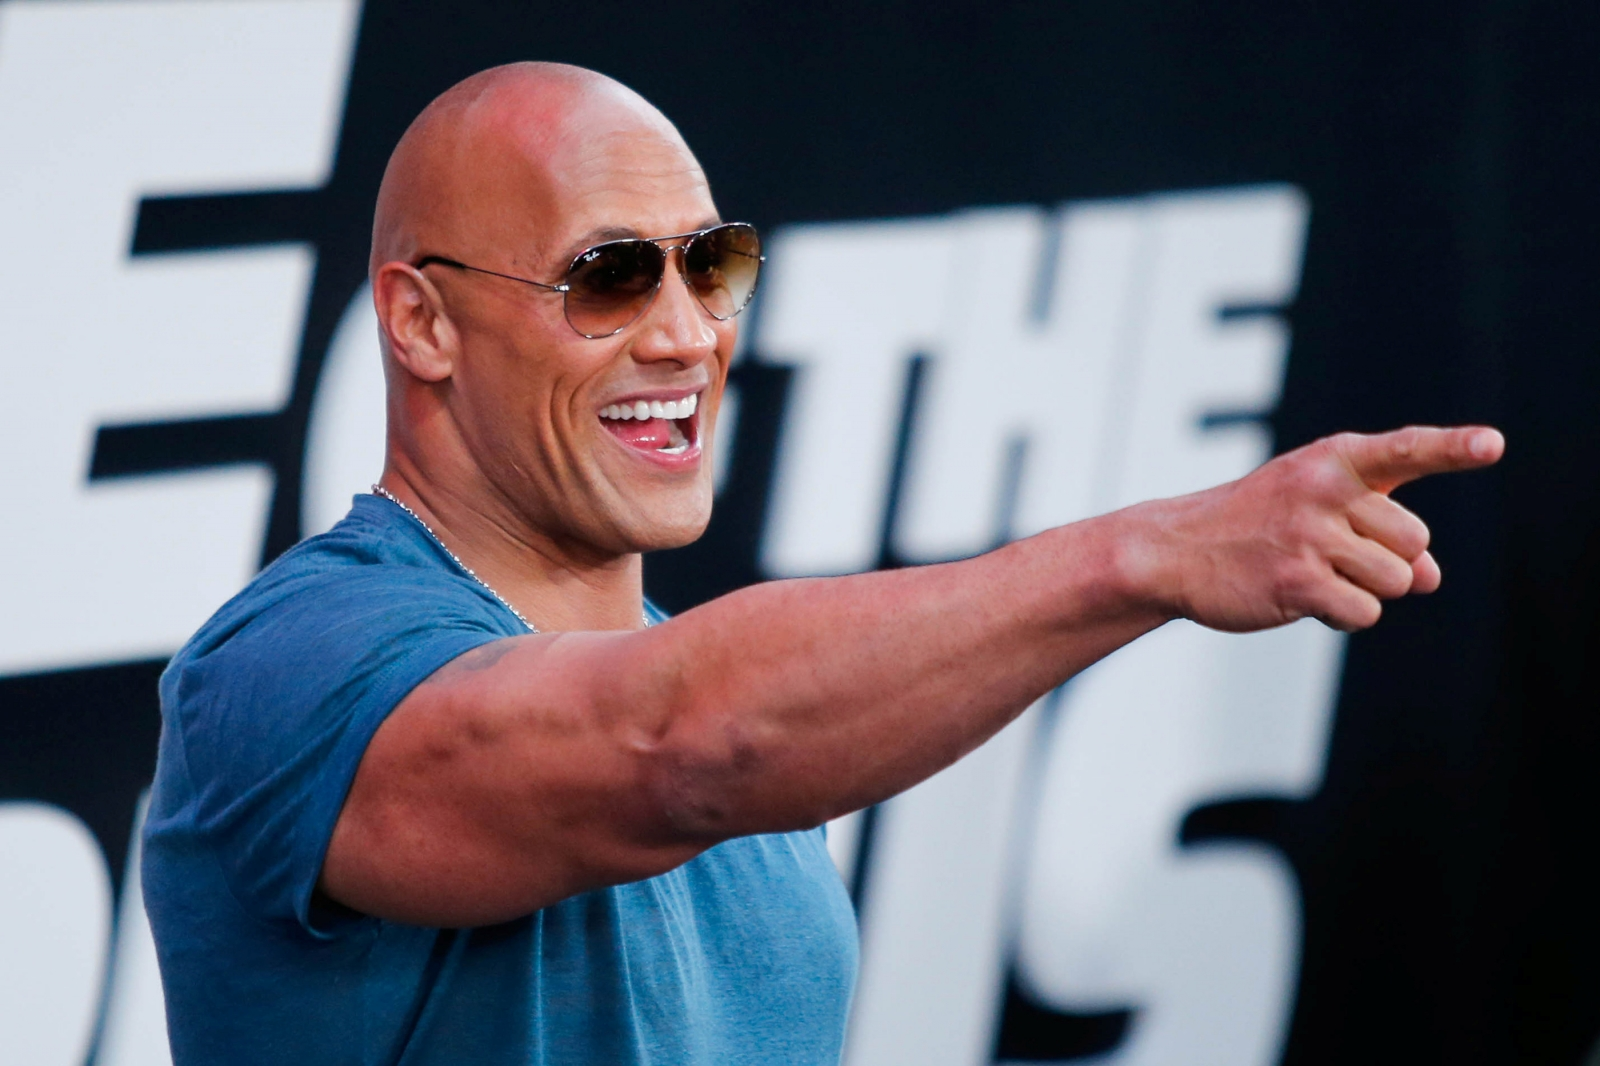 Campaign committee files to draft Dwayne 'The Rock' Johnson for president